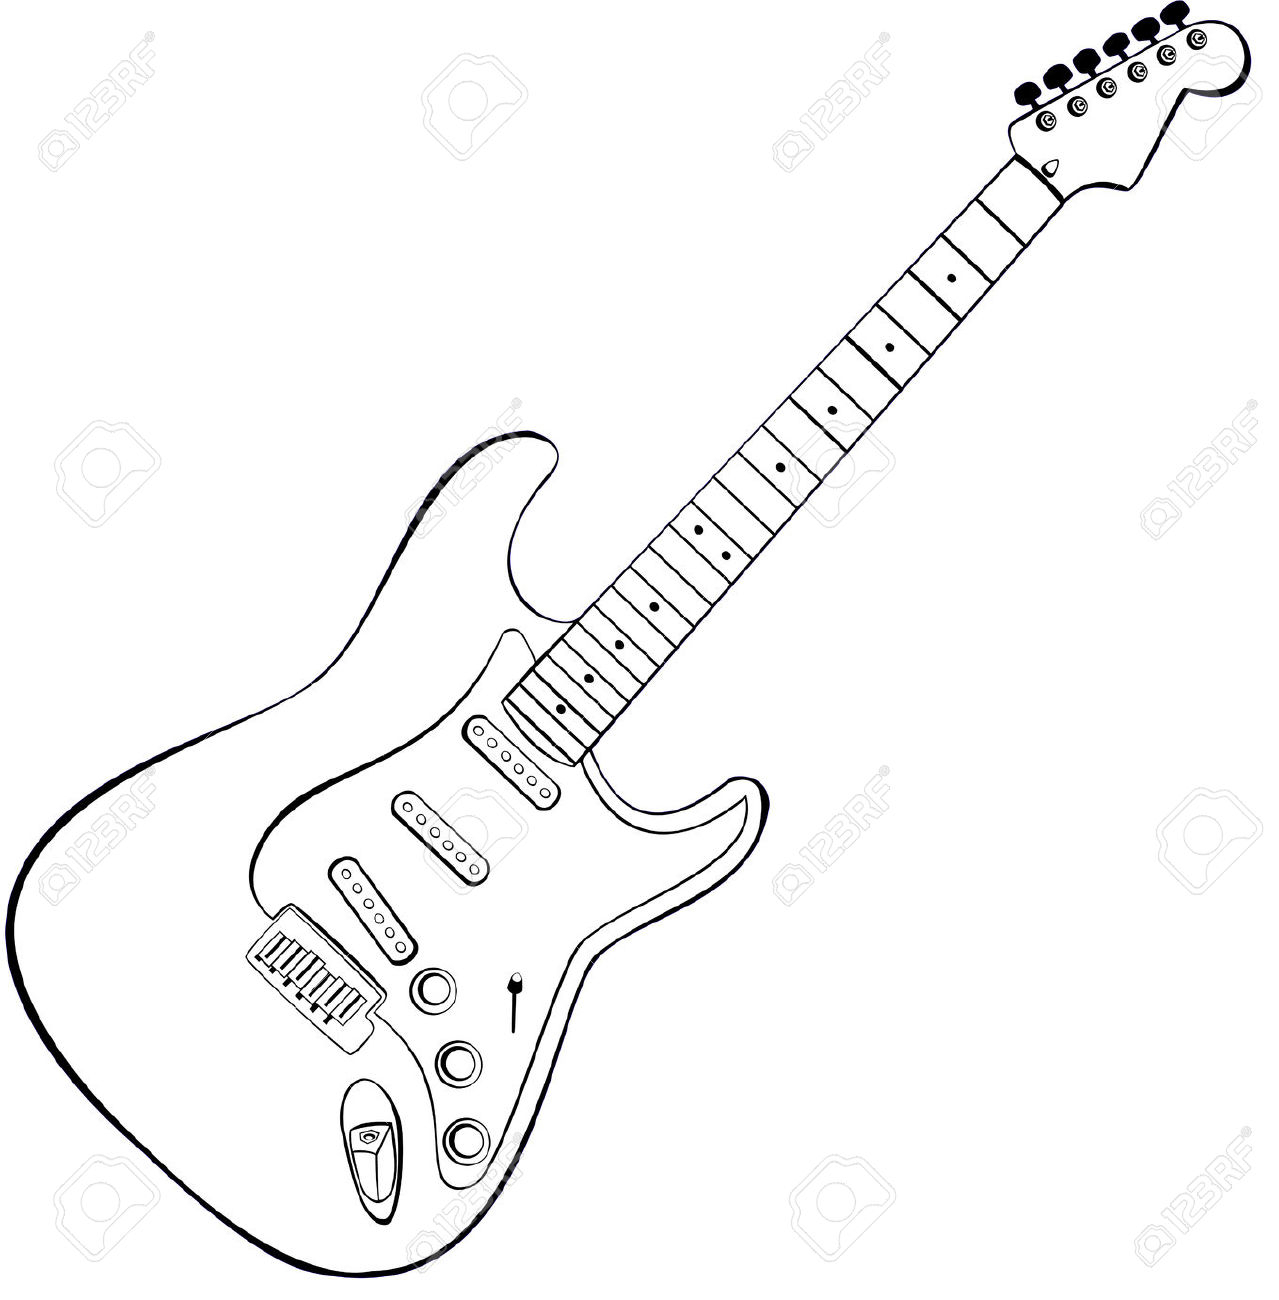 1279x1300 Drawing Of A Guitar Drawn Lines Guitar